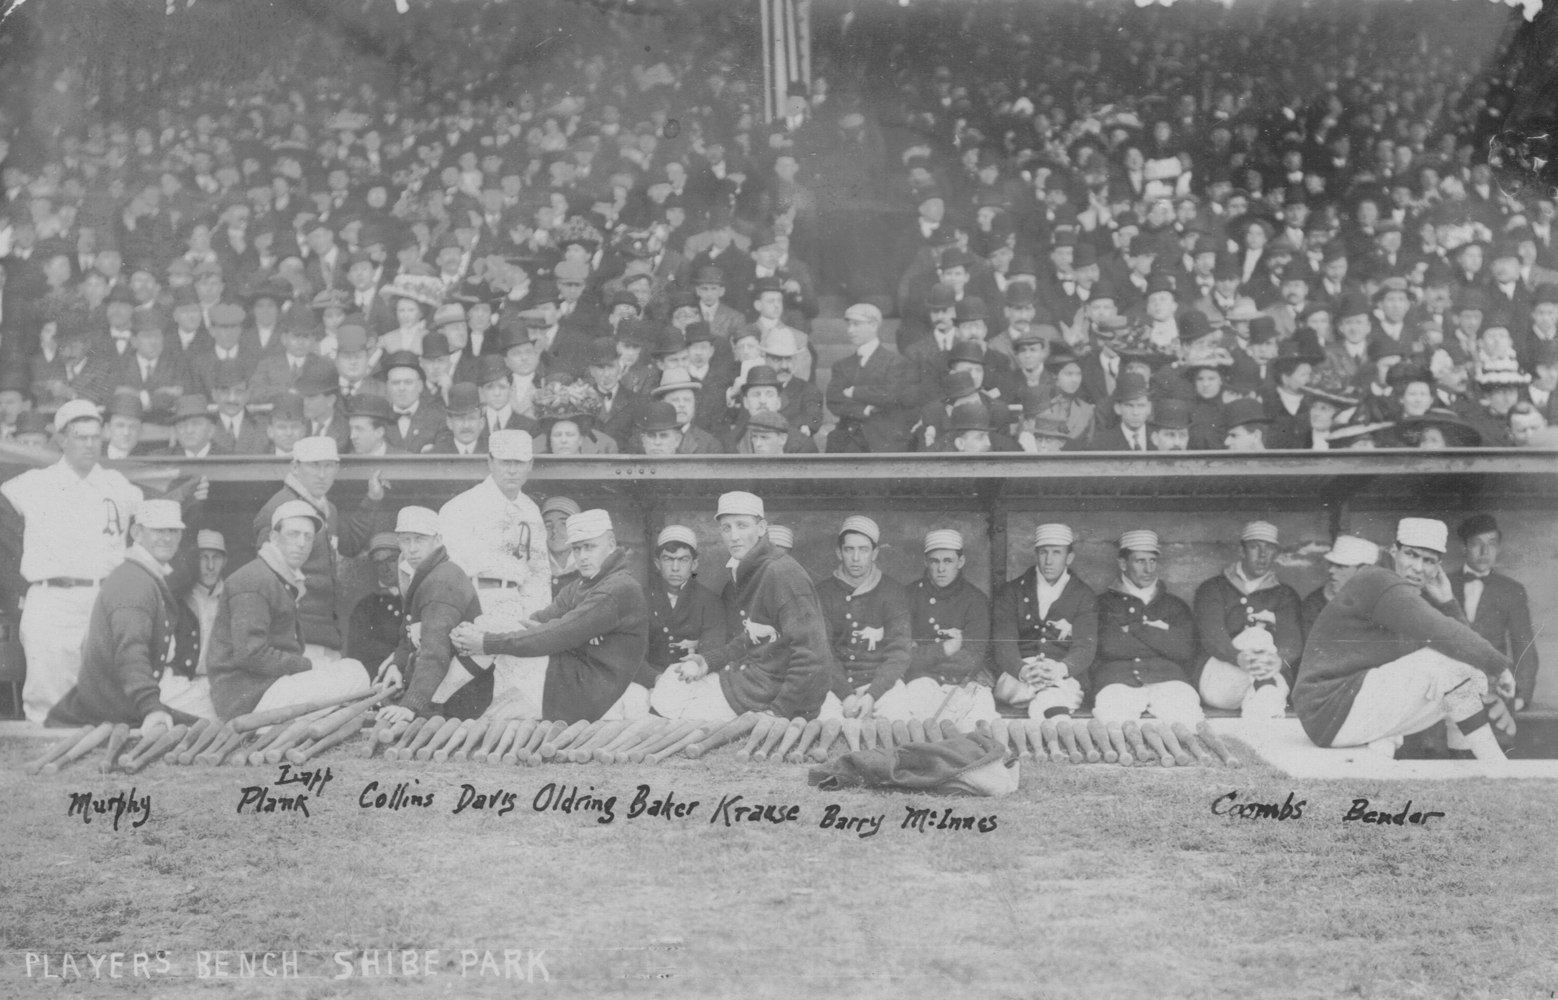 Athletics players relax in their dugout just before the start of the inaugural home opener at Shibe Park on April 12, 1909.